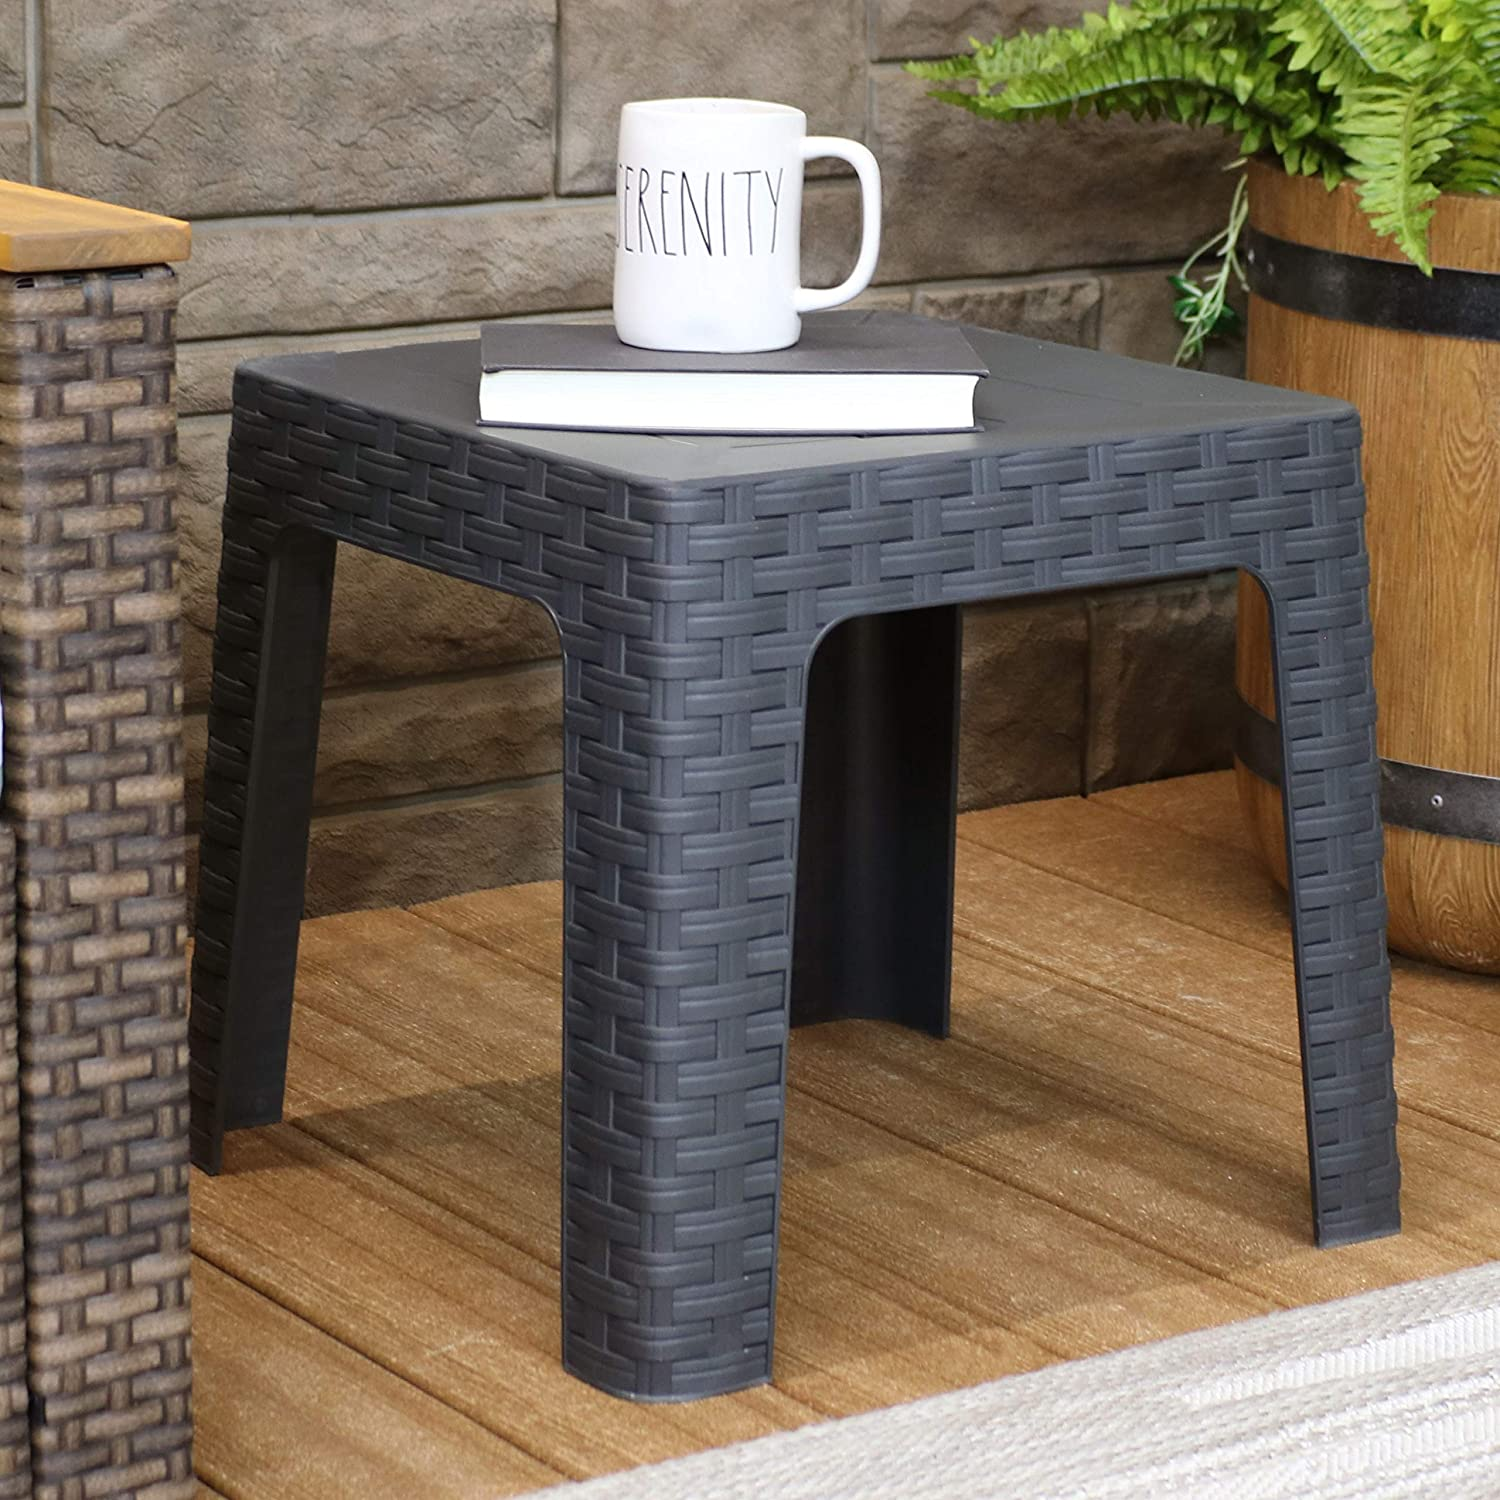 Porch Backyard and Sunroom 18-Inch Square Balcony Brown Garden Indoor//Outdoor Plastic Accent Furniture for Deck Sunnydaze Patio Side Table Yard